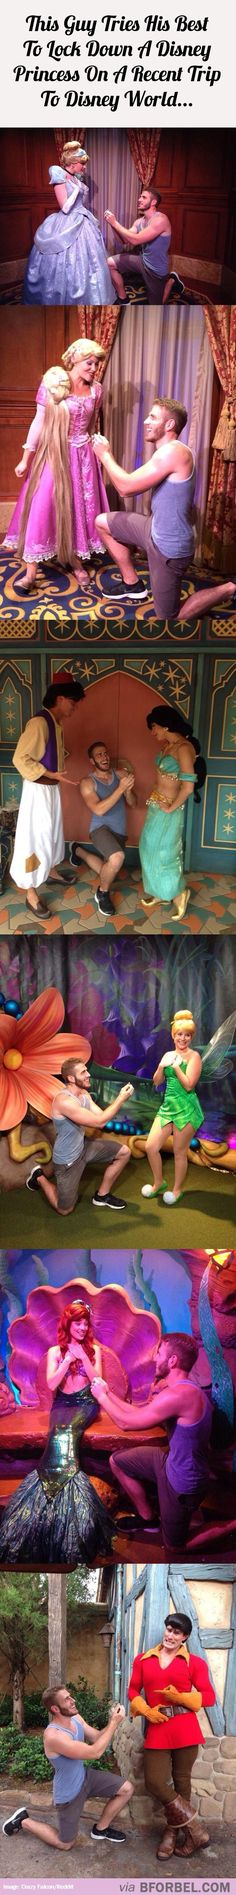 Guy Tries His Best To Lock Down A Disney Princess On A Recent Trip To Disney World…>>> That last one though